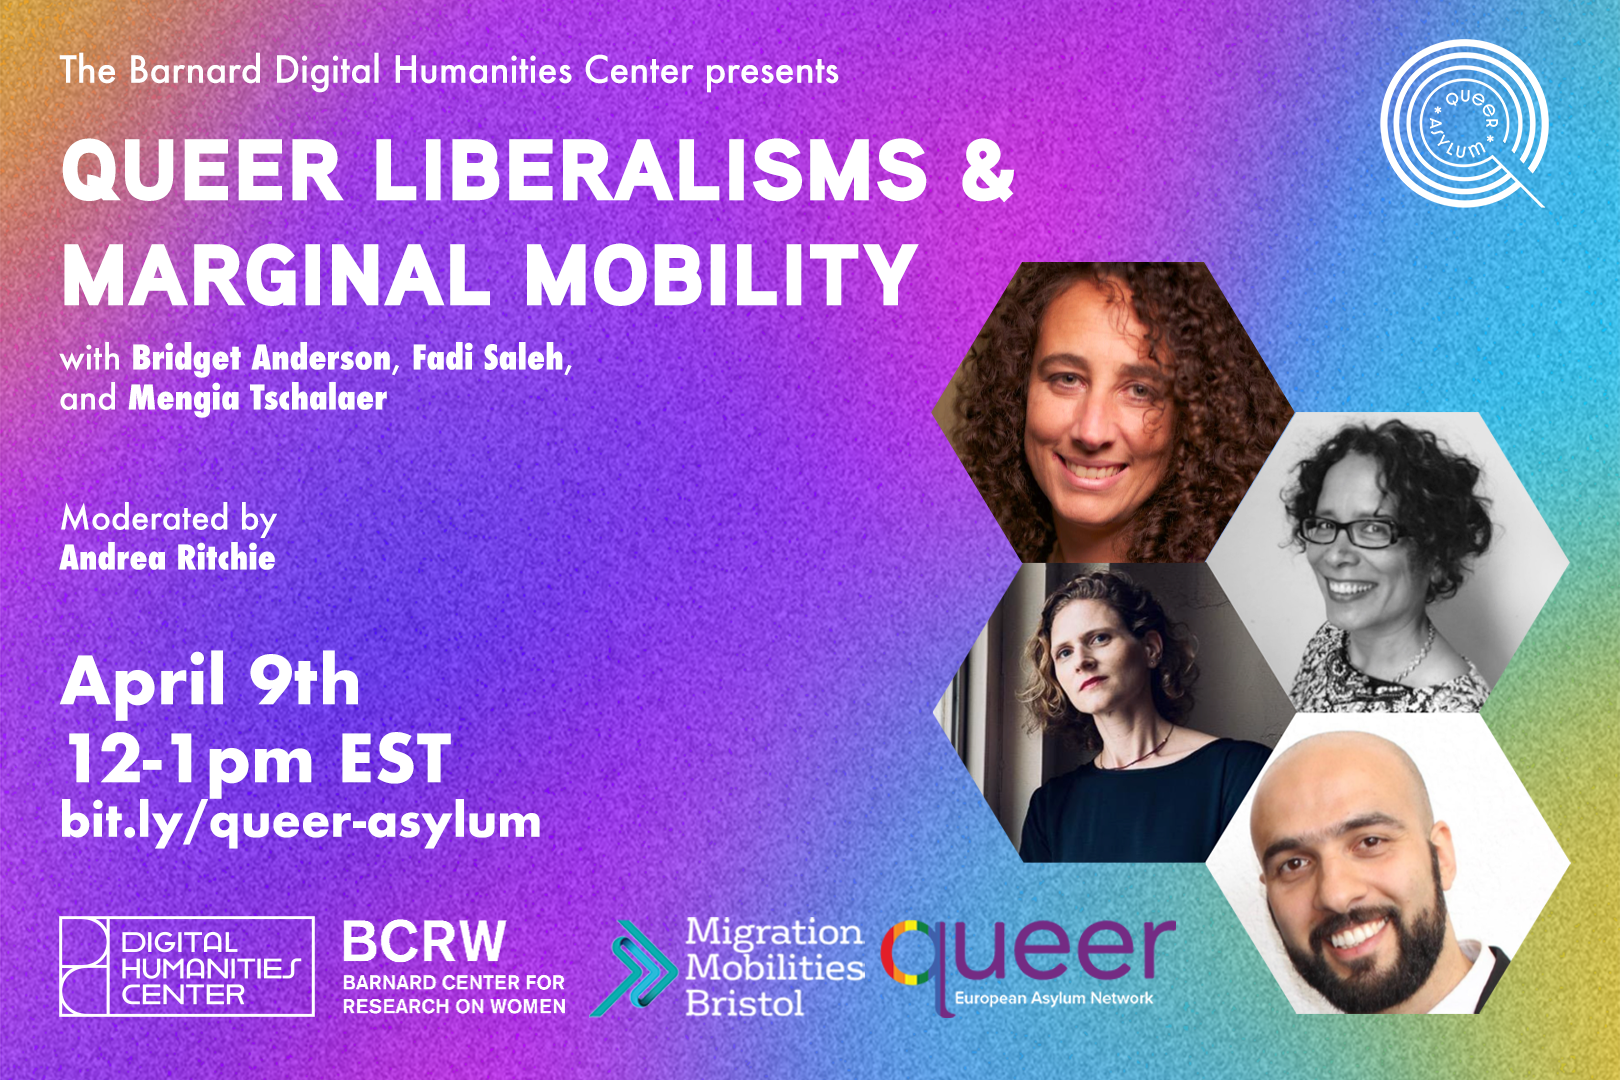 Slide with event information of Queer Liberalisms & Migrational Mobility